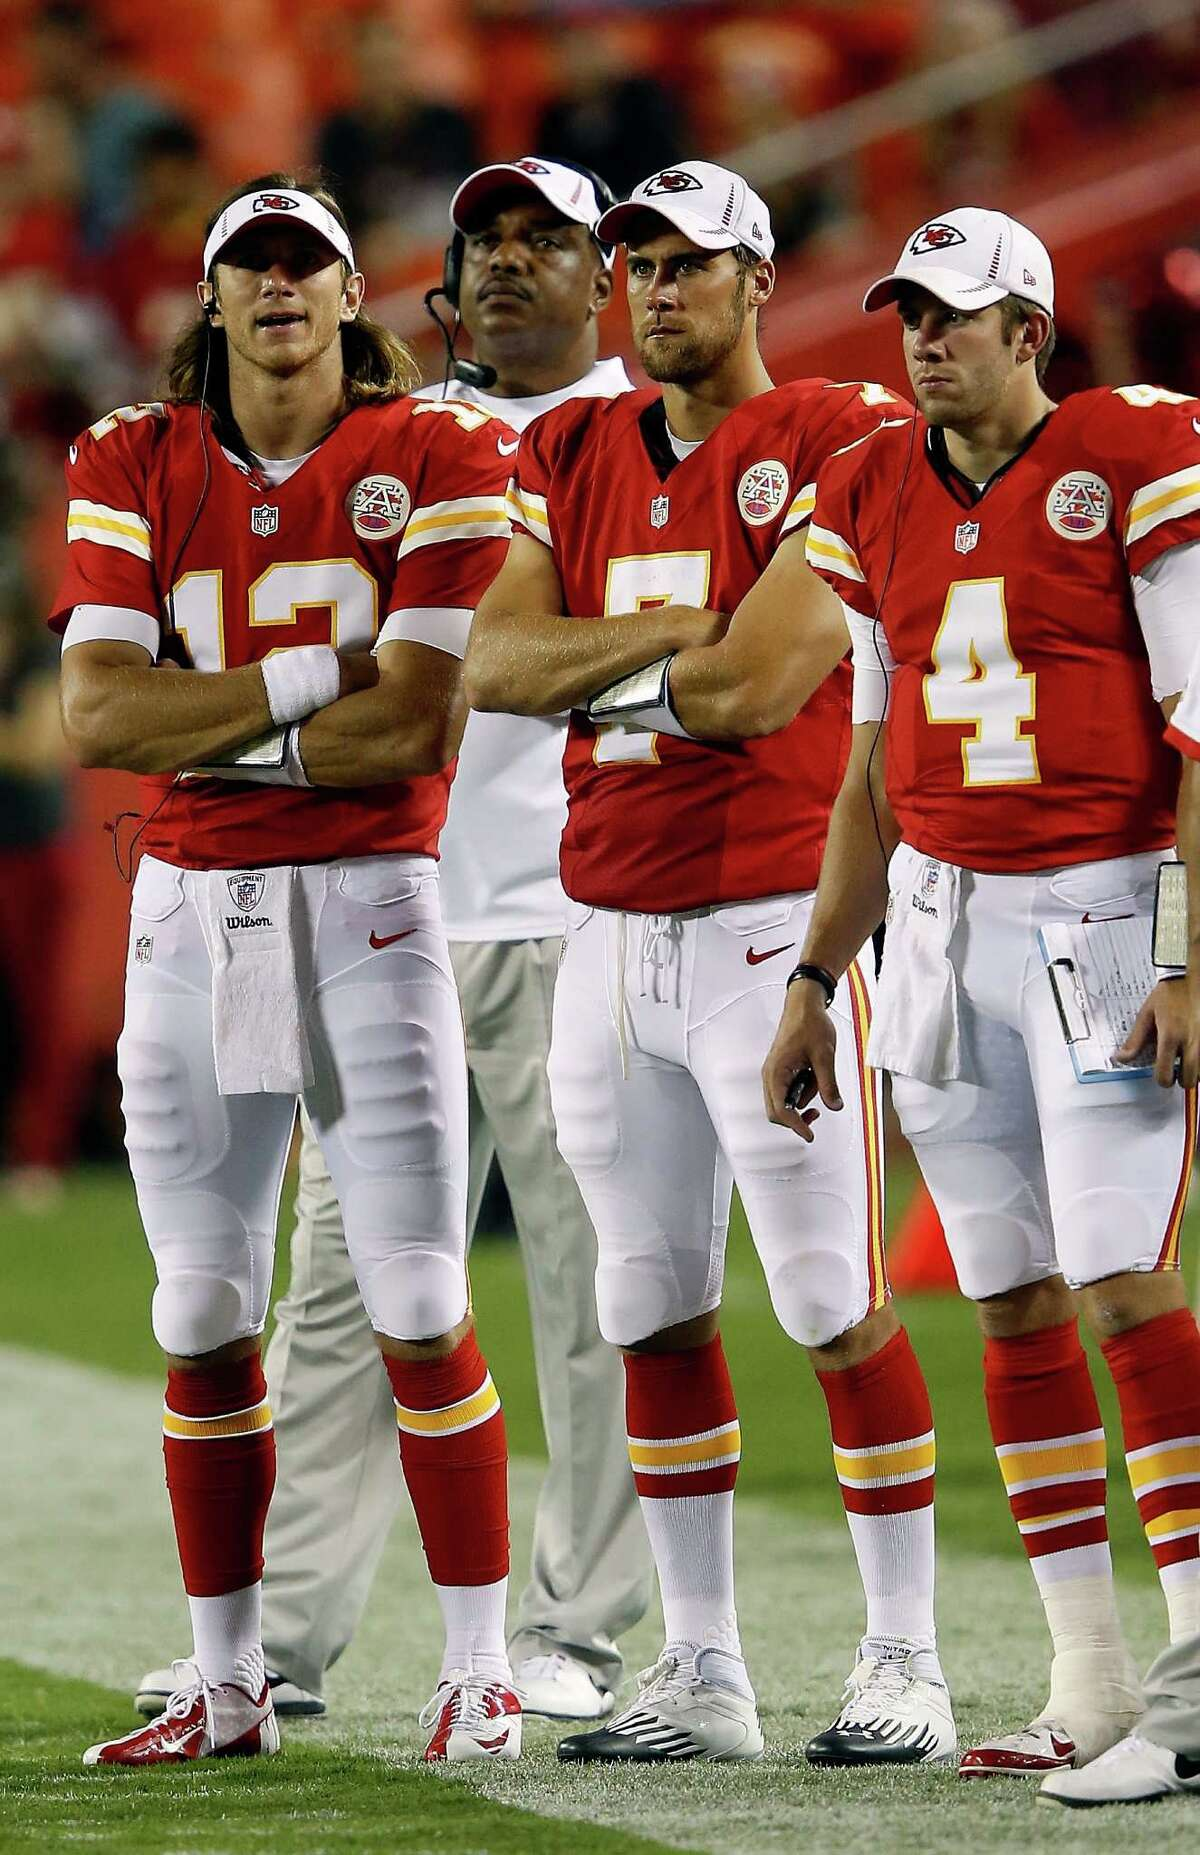 KANSAS CITY, MO - AUGUST 24: Quarterbacks Ricky Stanzi #12, Matt Cassel #7, and Alex Tanney #4 of the Kansas City Chiefs watch from the sidelines during the NFL preseason game against the Seattle Seahawks at Arrowhead Stadium on August 24, 2012 in Kansas City, Missouri.